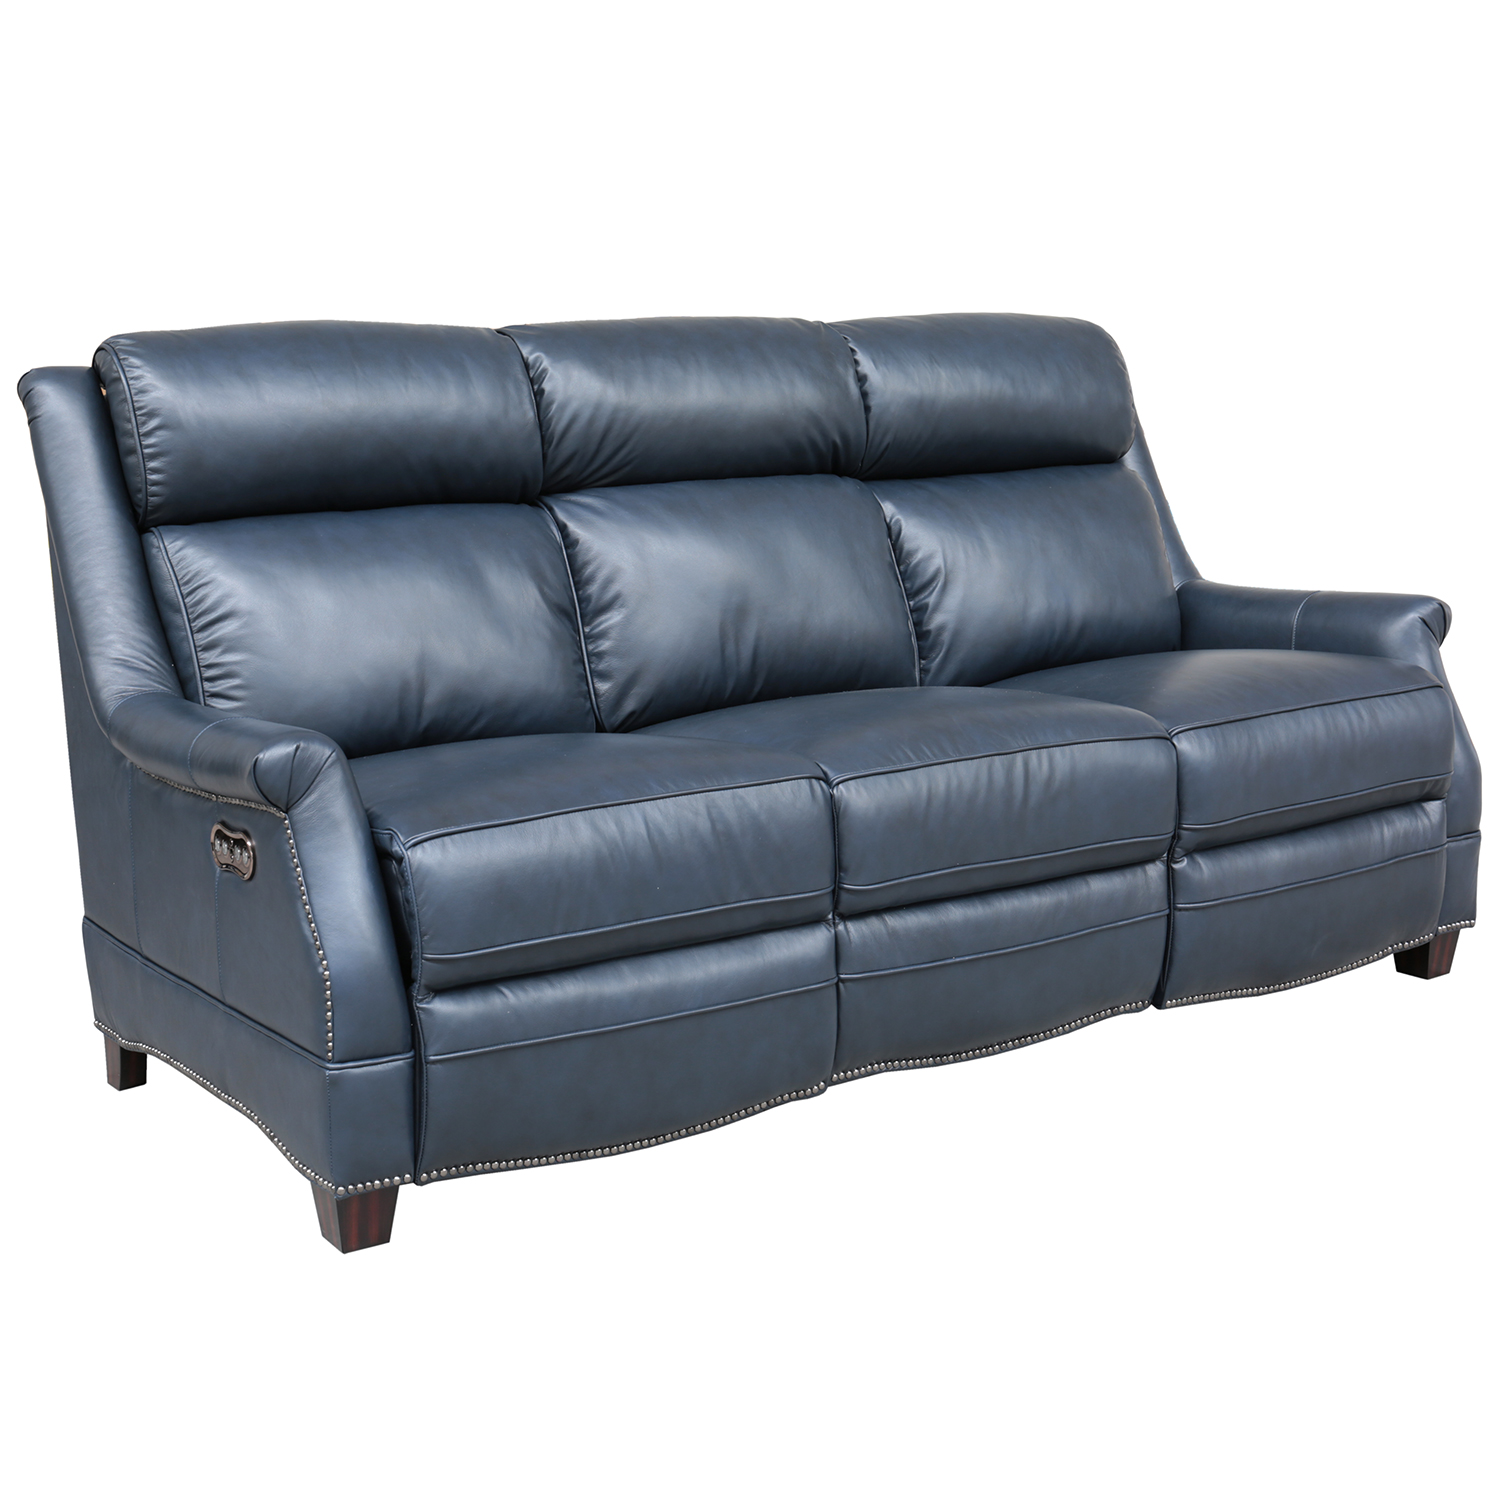 Warrendale Power Reclining Sofa In Shoreham Blue Leather By Barcalounger